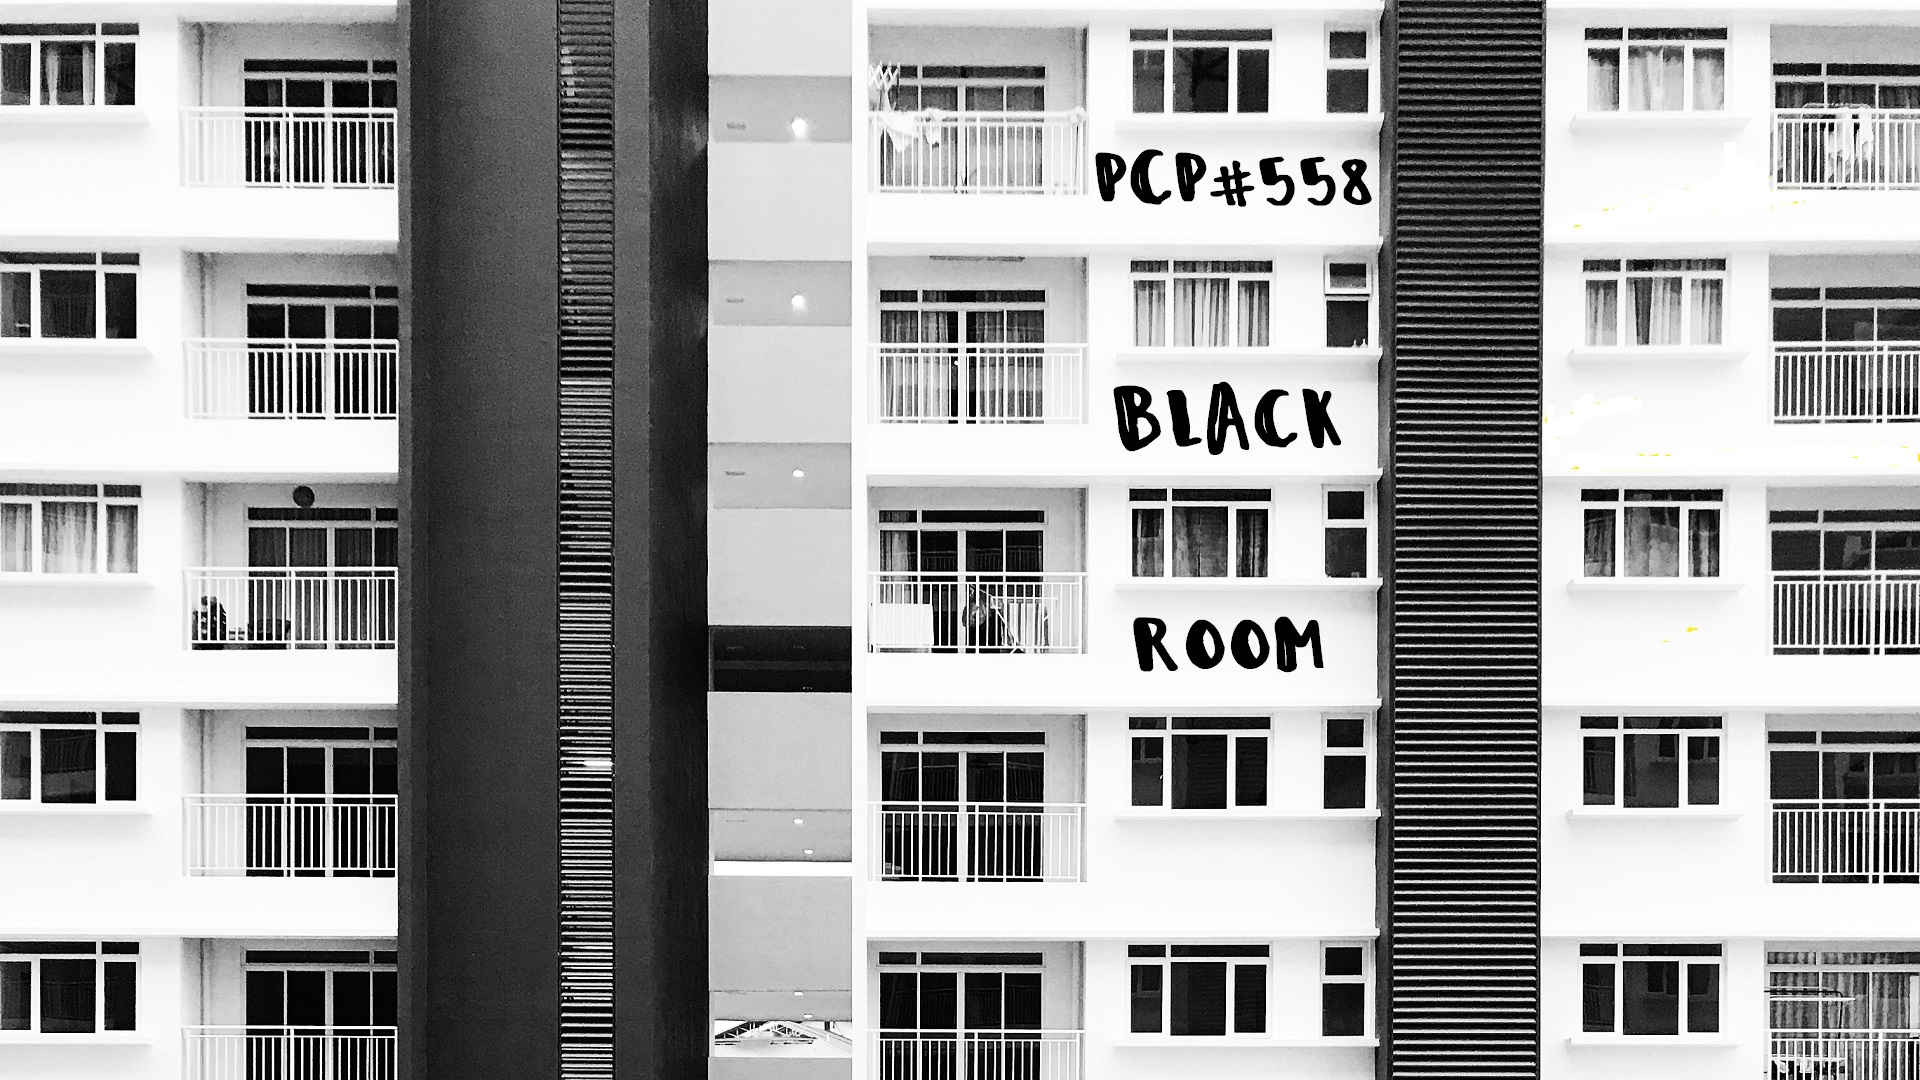 PCP#558... Black Room...